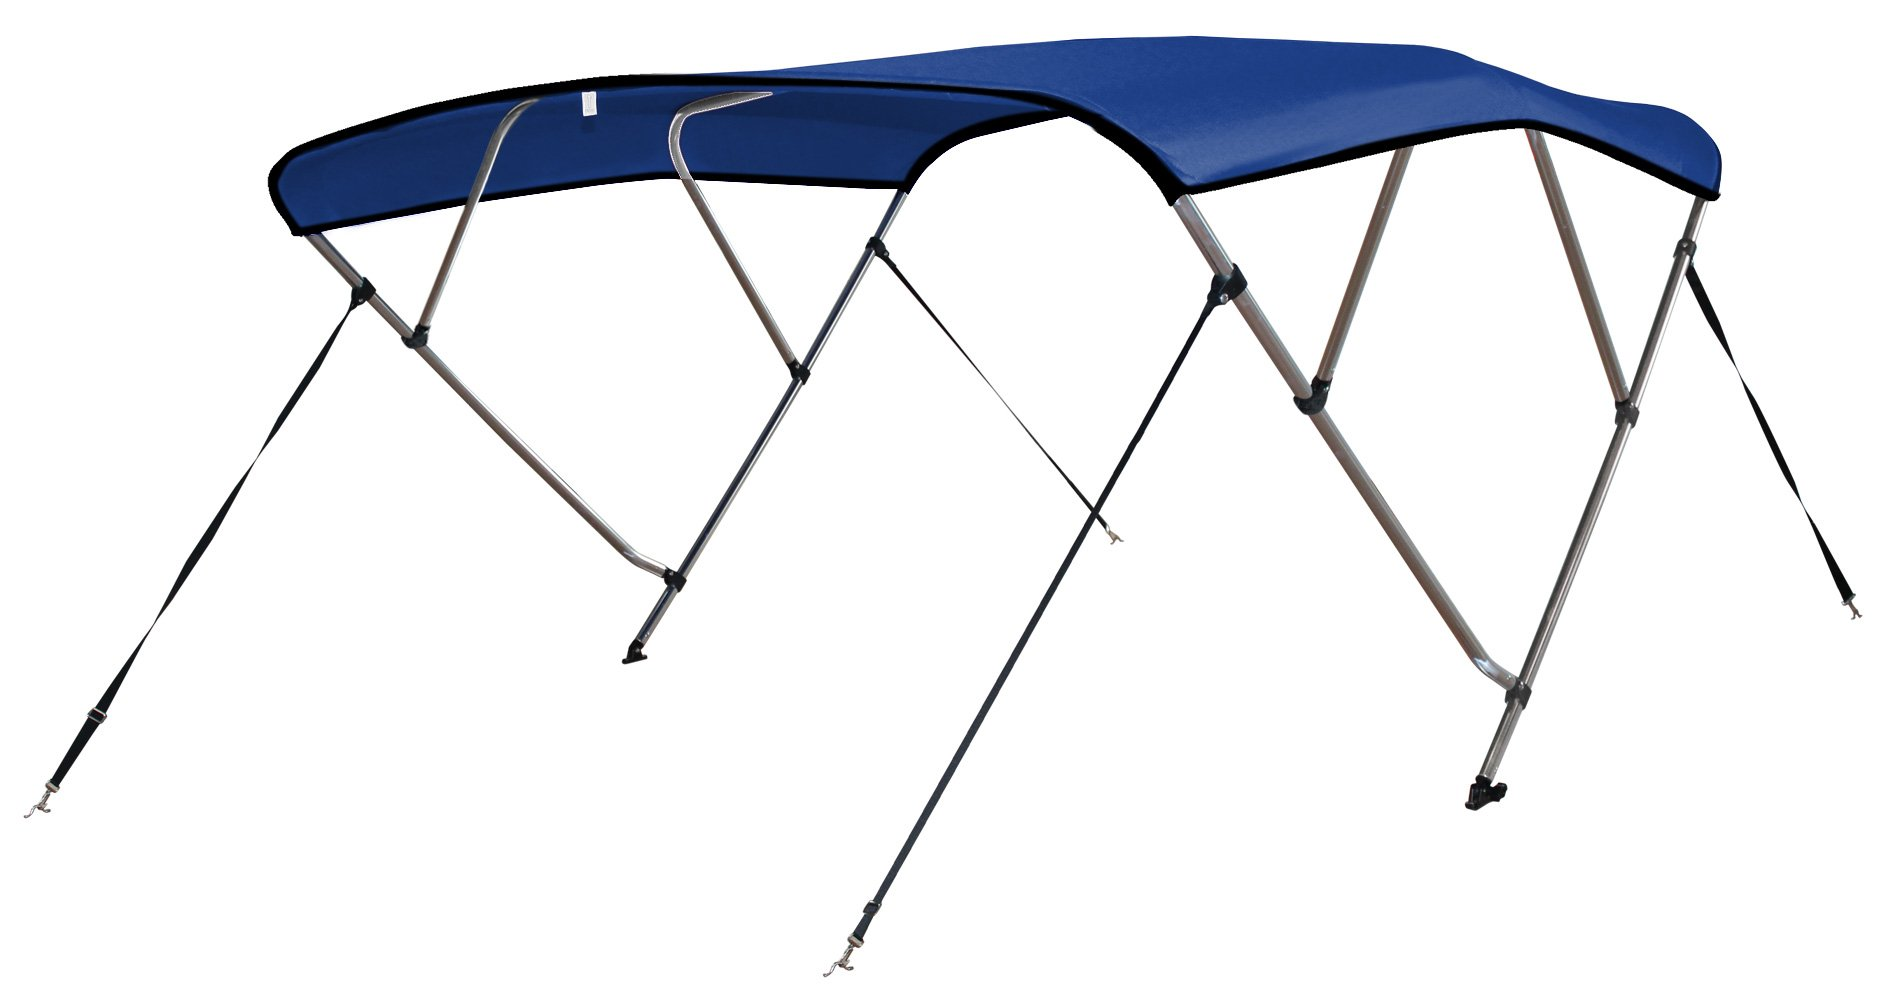 Leader Accessories 4 Bow Pacific Blue 8'L x 54'' H x 73''-78'' W Bimini Tops Boat Cover 4 Straps for Front and Rear Includes Mounting Hardwares with 1 Inch Aluminum Frame by Leader Accessories